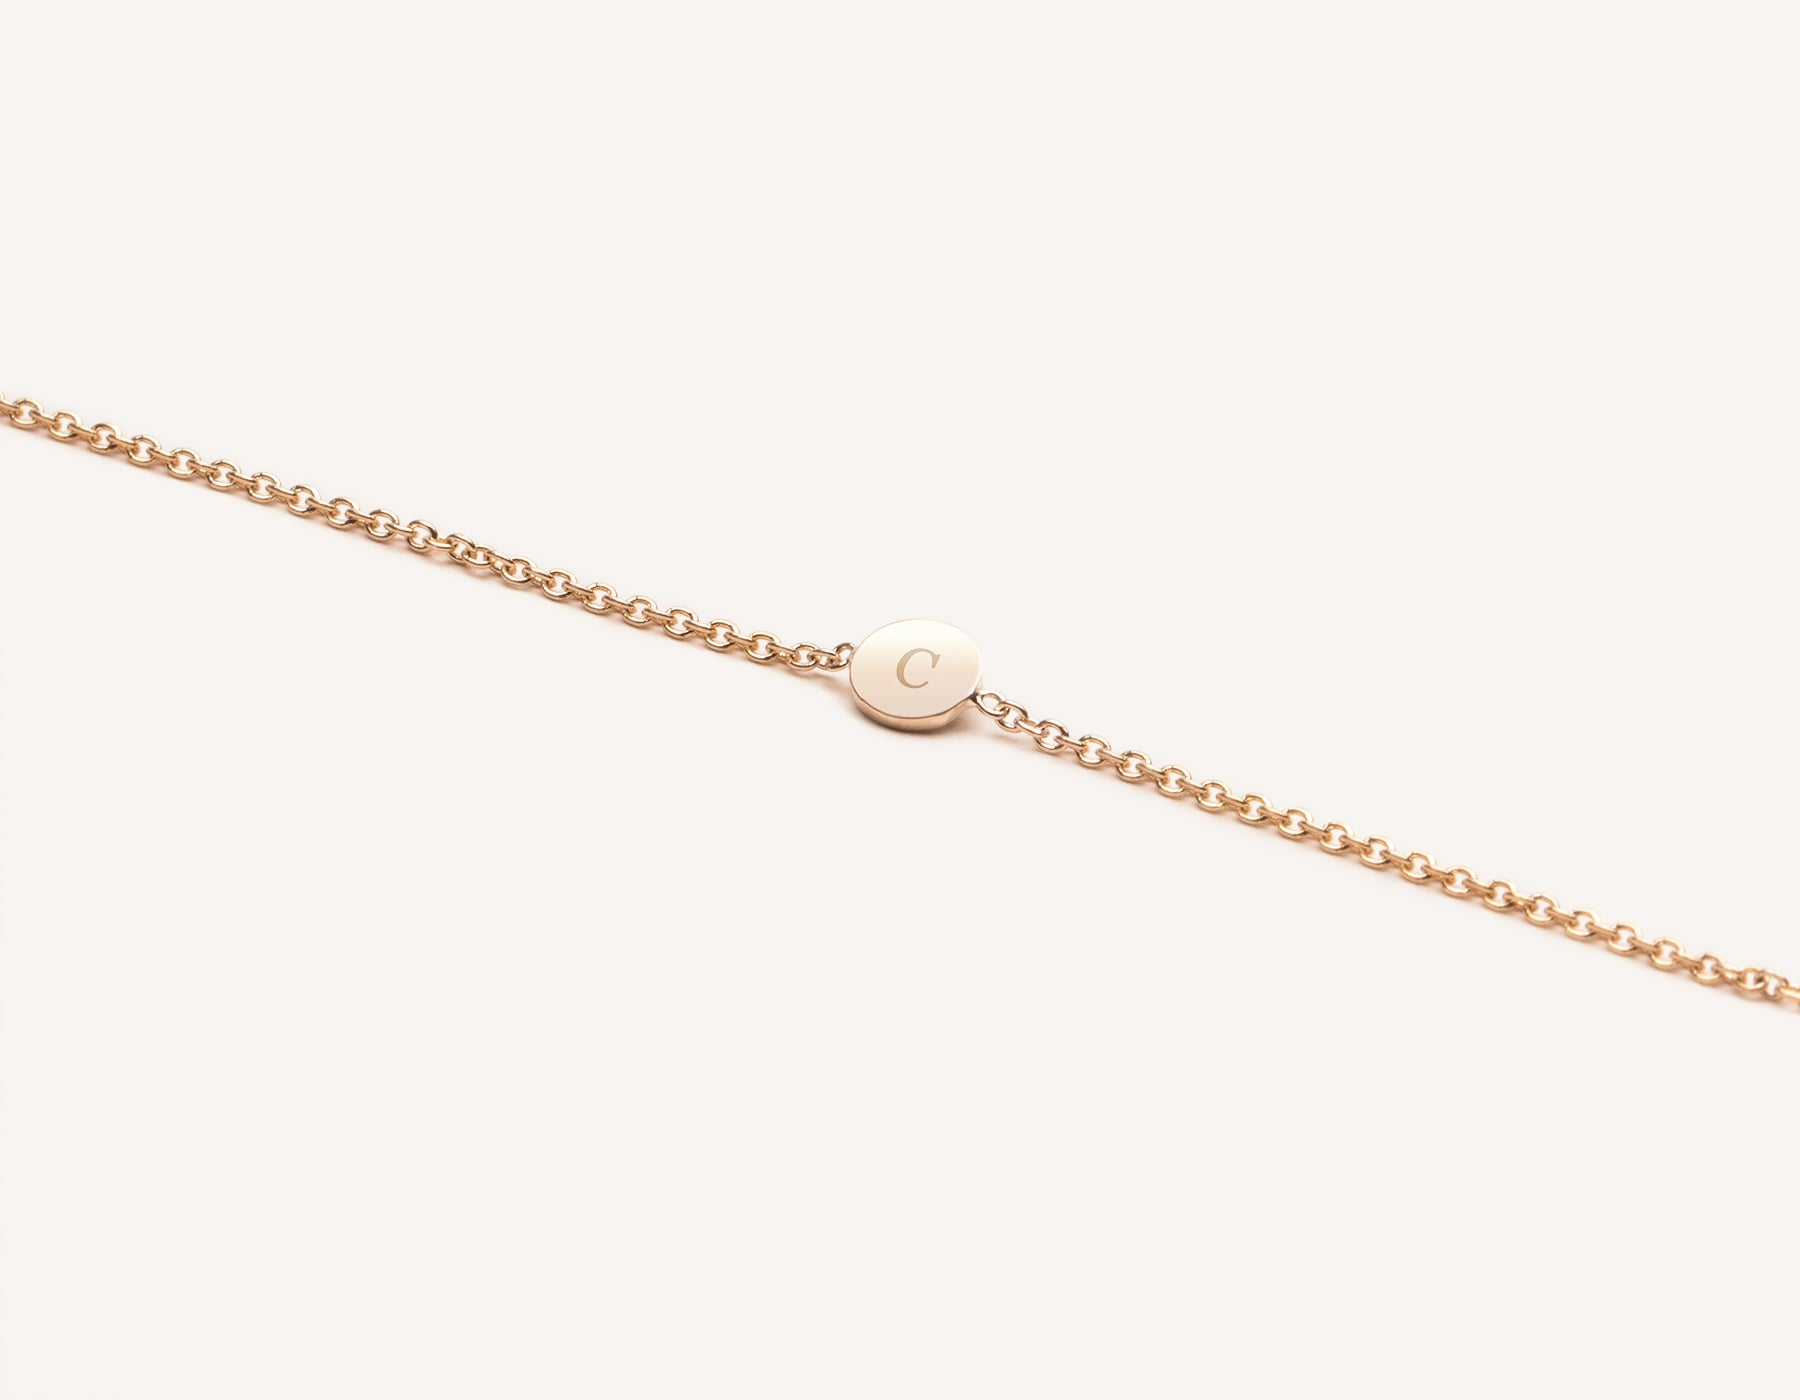 Modern minimalist Initial Bracelet 14k solid gold disk on simple chain Vrai & Oro, 14K Rose Gold